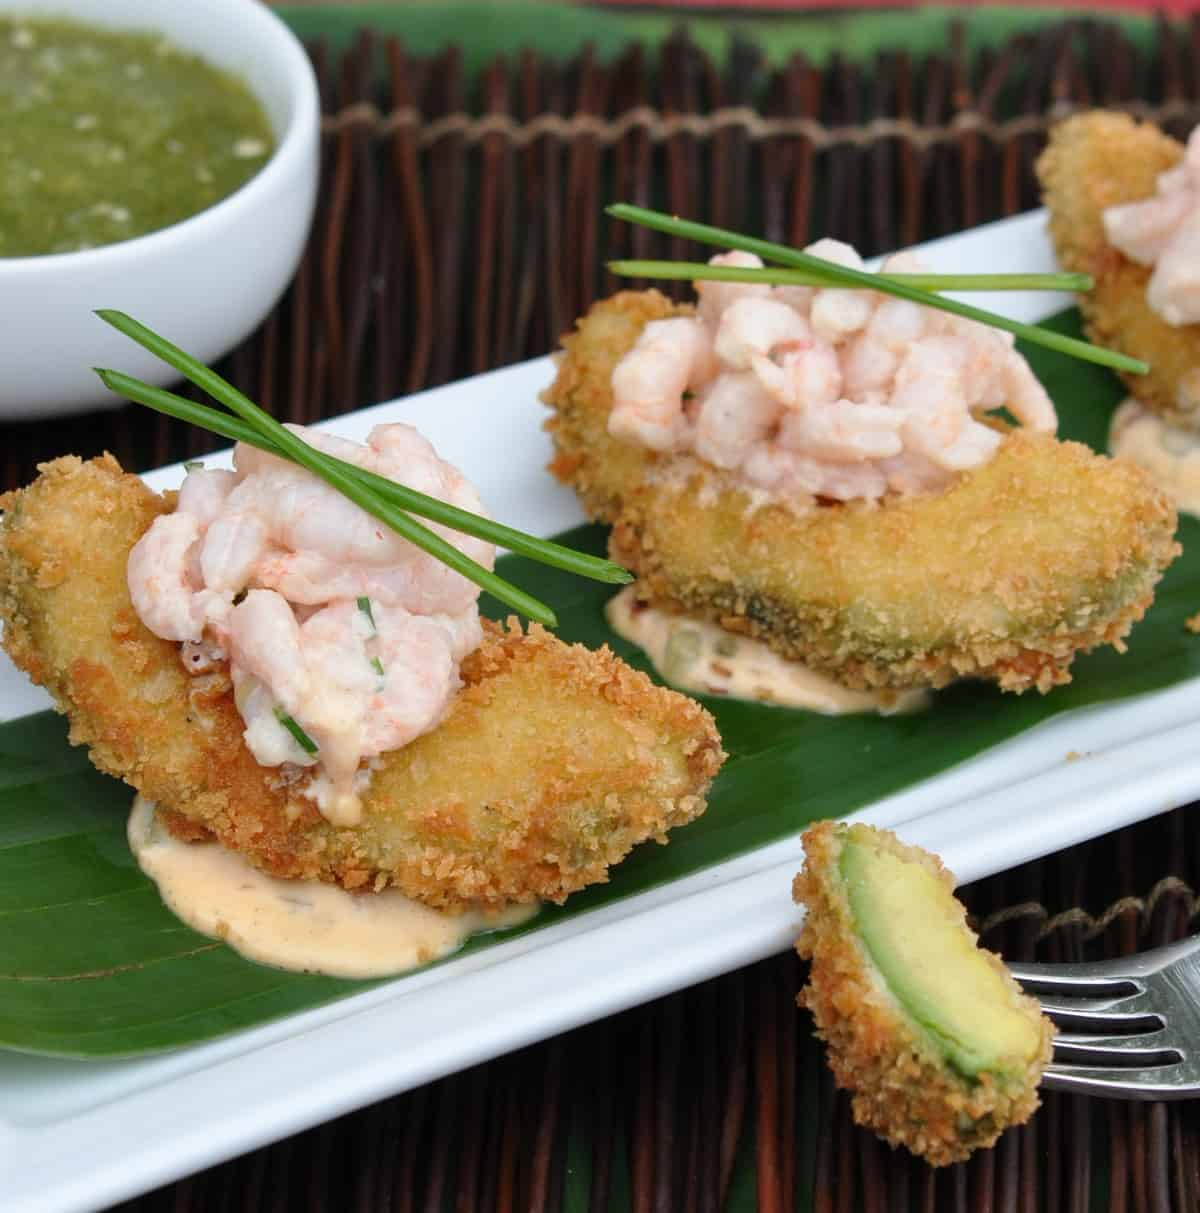 Fried Avocado with Spicy Shrimp Salad Recipe